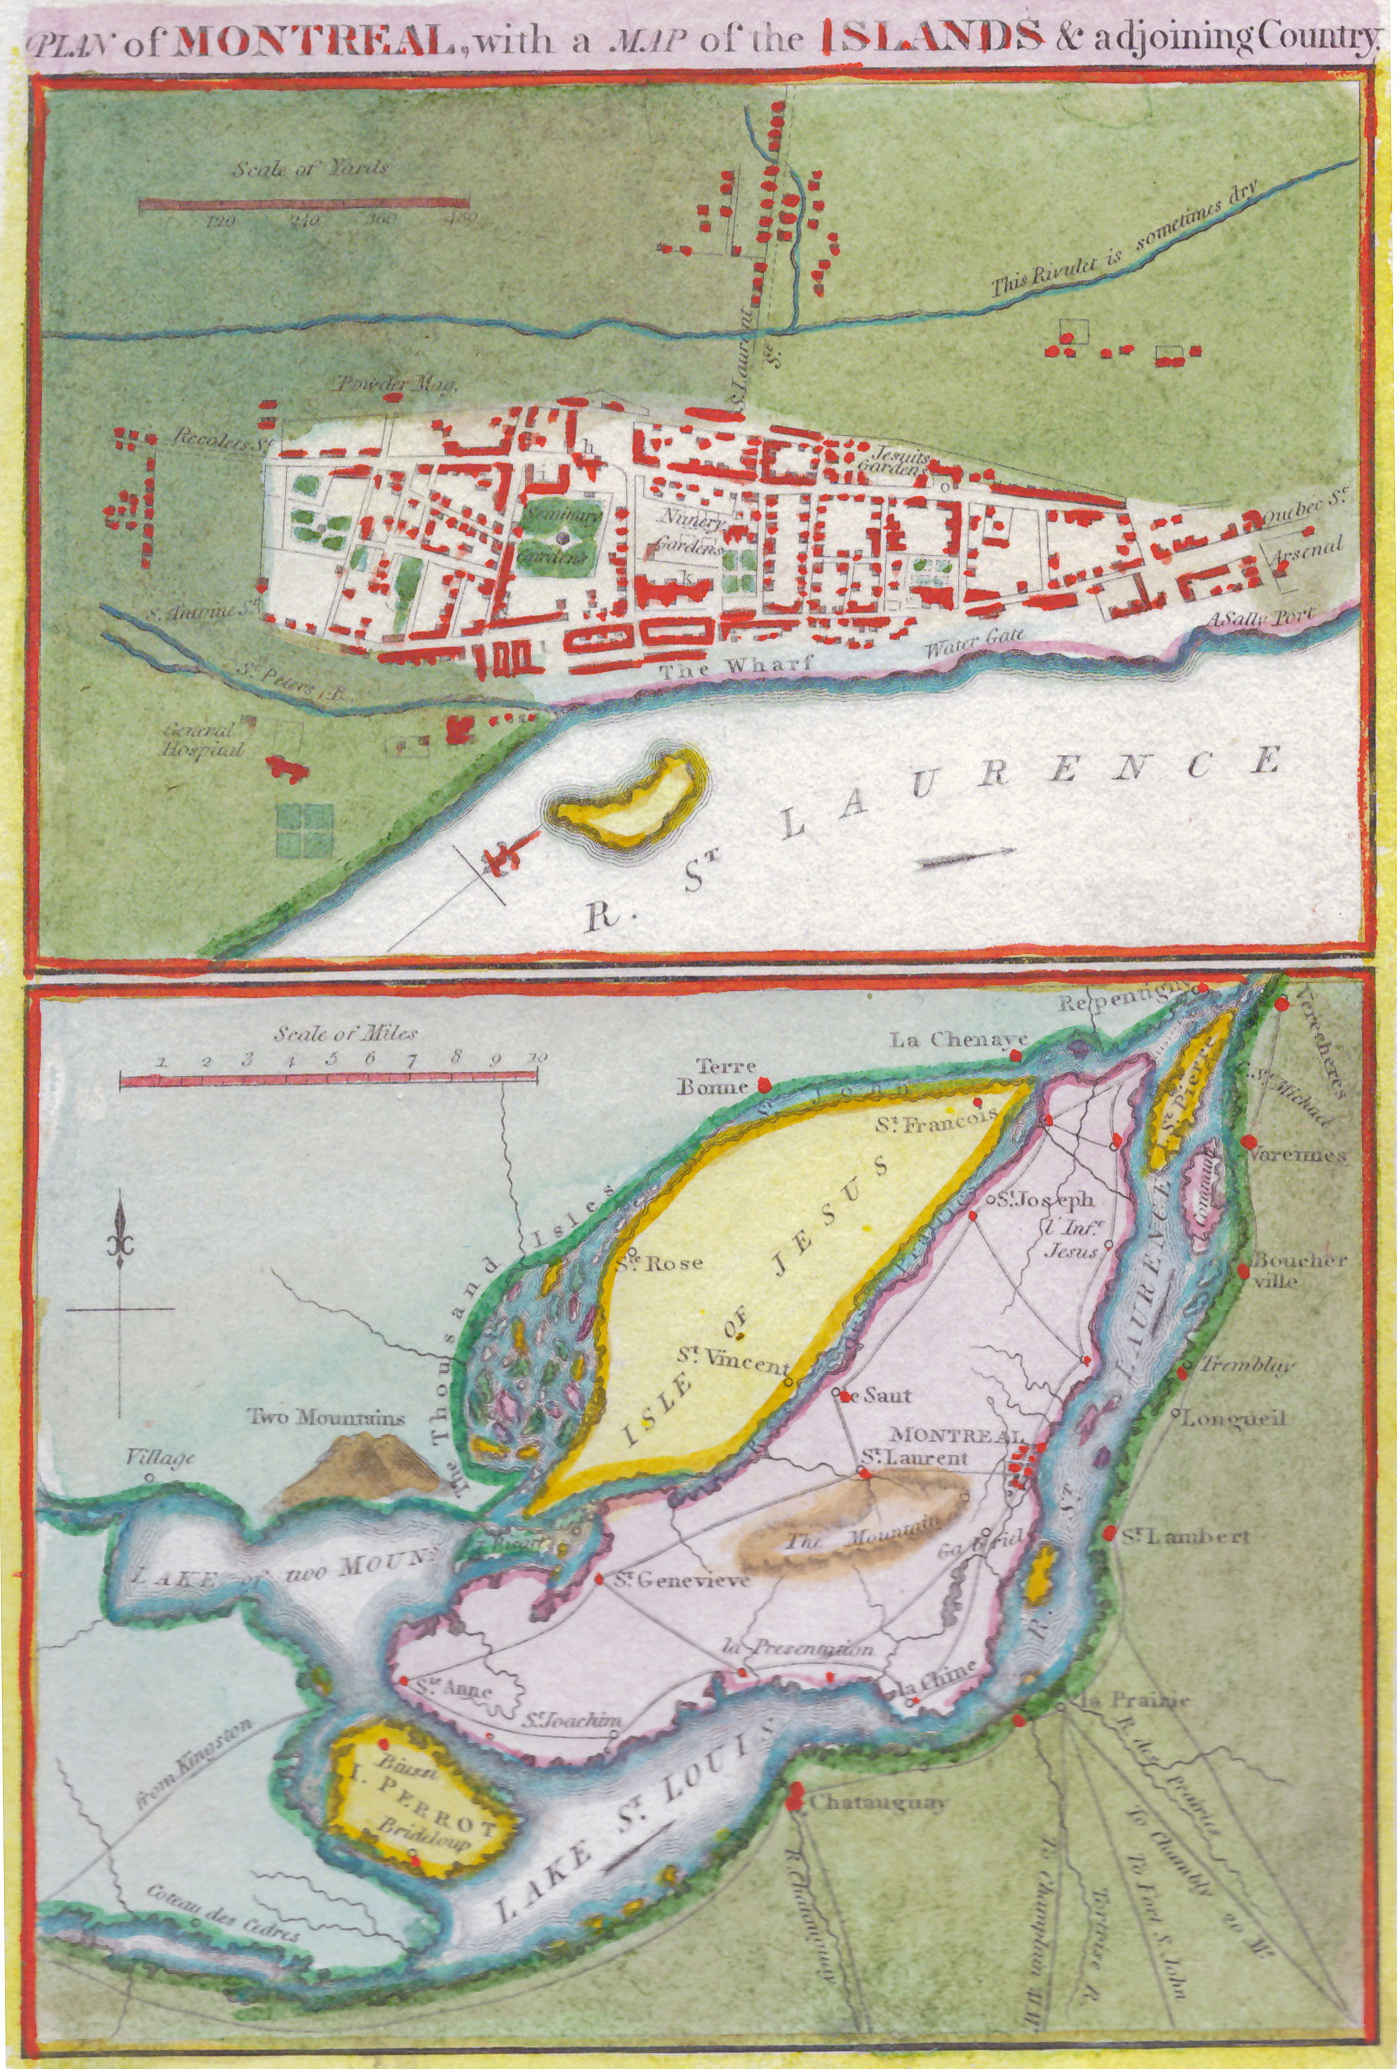 The 1815 map by John Melish is historical (not contemporary to the date published) and from a military atlas. It is interesting since it also shows the region around Montreal but the actual Old Montreal map dates from 1760. Photos courtesy of David Chandler and Stanley Sklar.